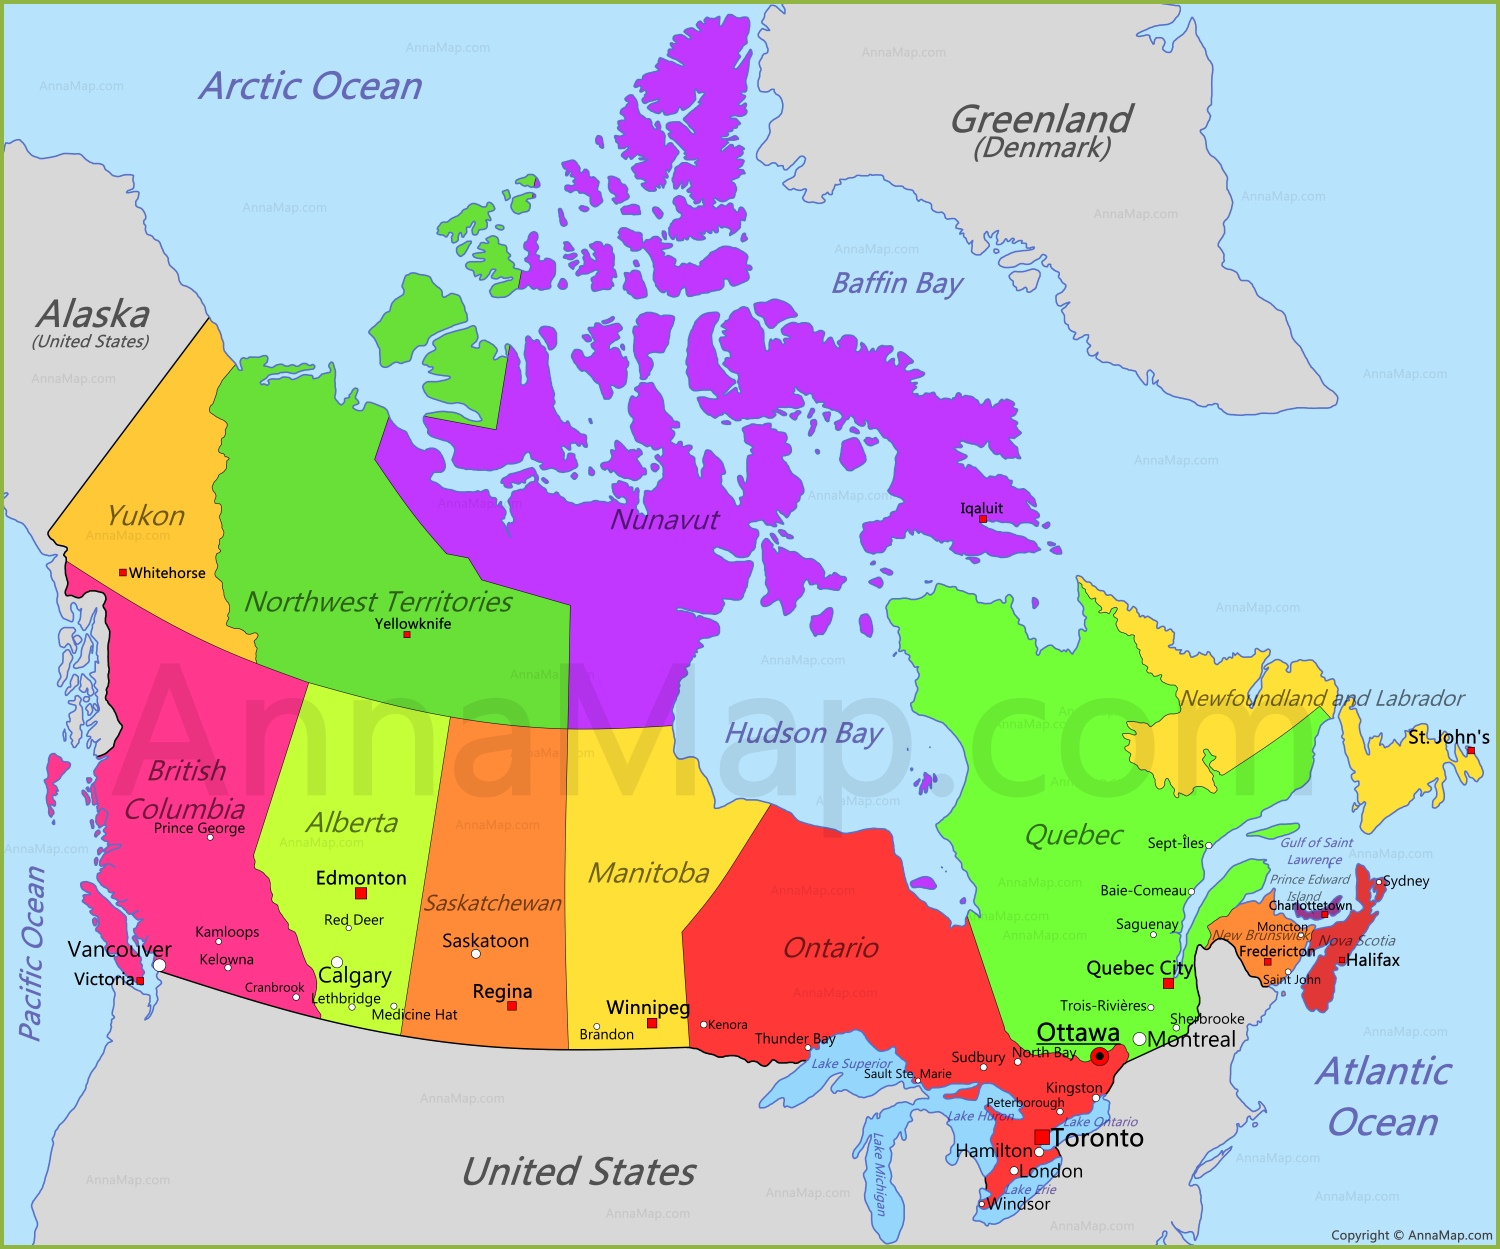 Canada Map | Map of Canada - AnnaMap.com on map of california, labrador canada, map of the united states, map of ohio, map of china, map of texas, cities in canada, saskatoon canada, google maps canada, provinces in canada, map of georgia, states in canada, map of new york, mississauga canada, map of italy, map of africa, hamilton canada, map of the world, map of north carolina, weather in canada, map of south america, map of germany, detailed map canada, manitoba canada, regions in canada, map of europe, map of usa, physical map canada, map of florida, lakes in canada, meanwhile in canada, windsor canada, london canada, map of france, calgary canada, map of mexico, banff canada, hockey in canada,